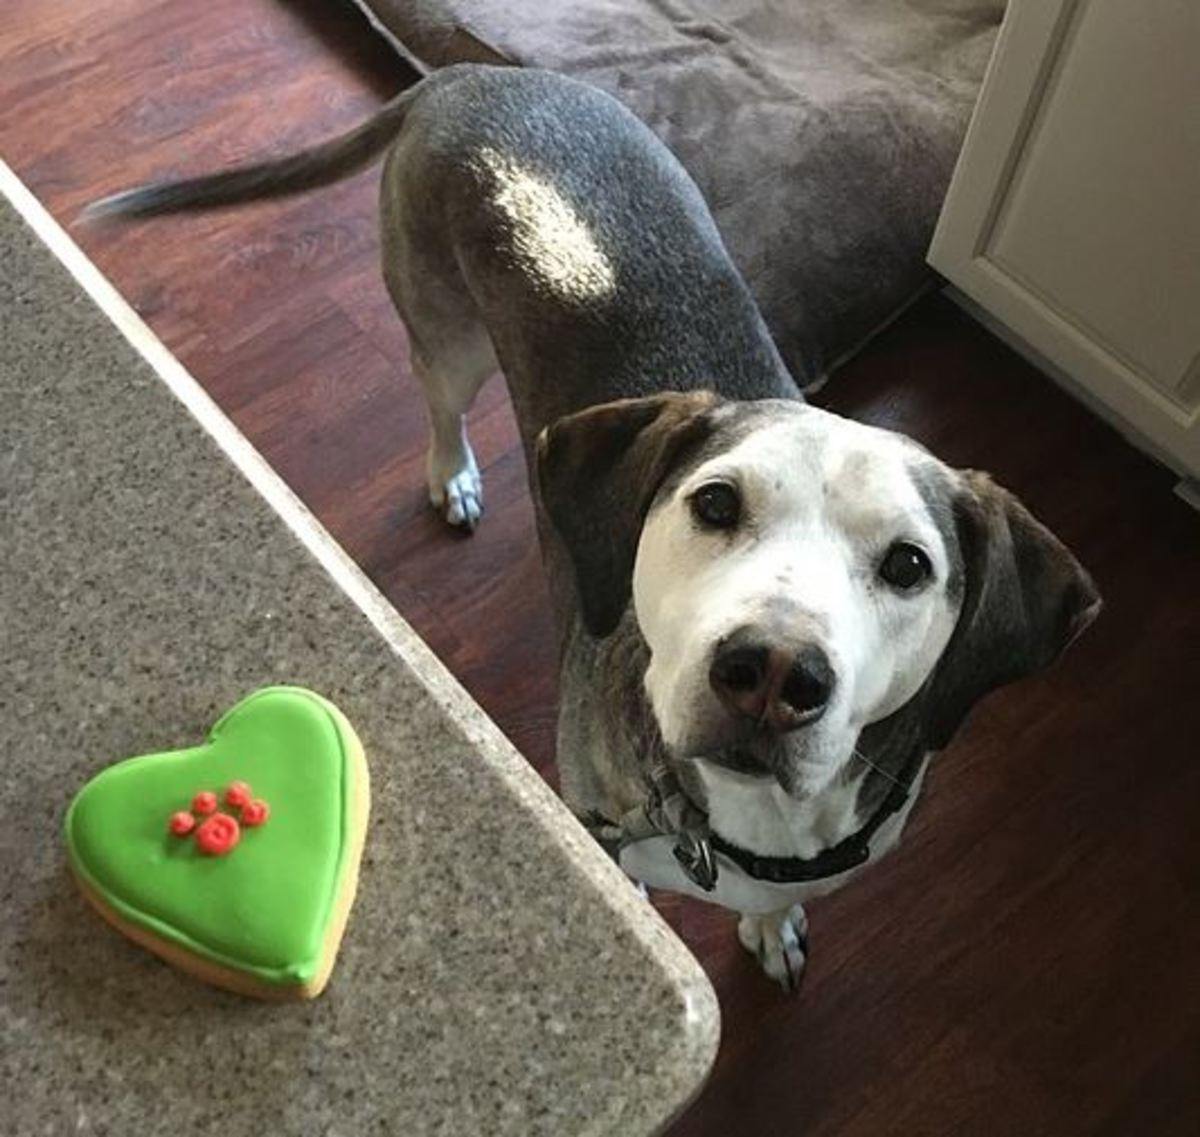 Reward your dog by rushing together to go grab a cookie over the counter.